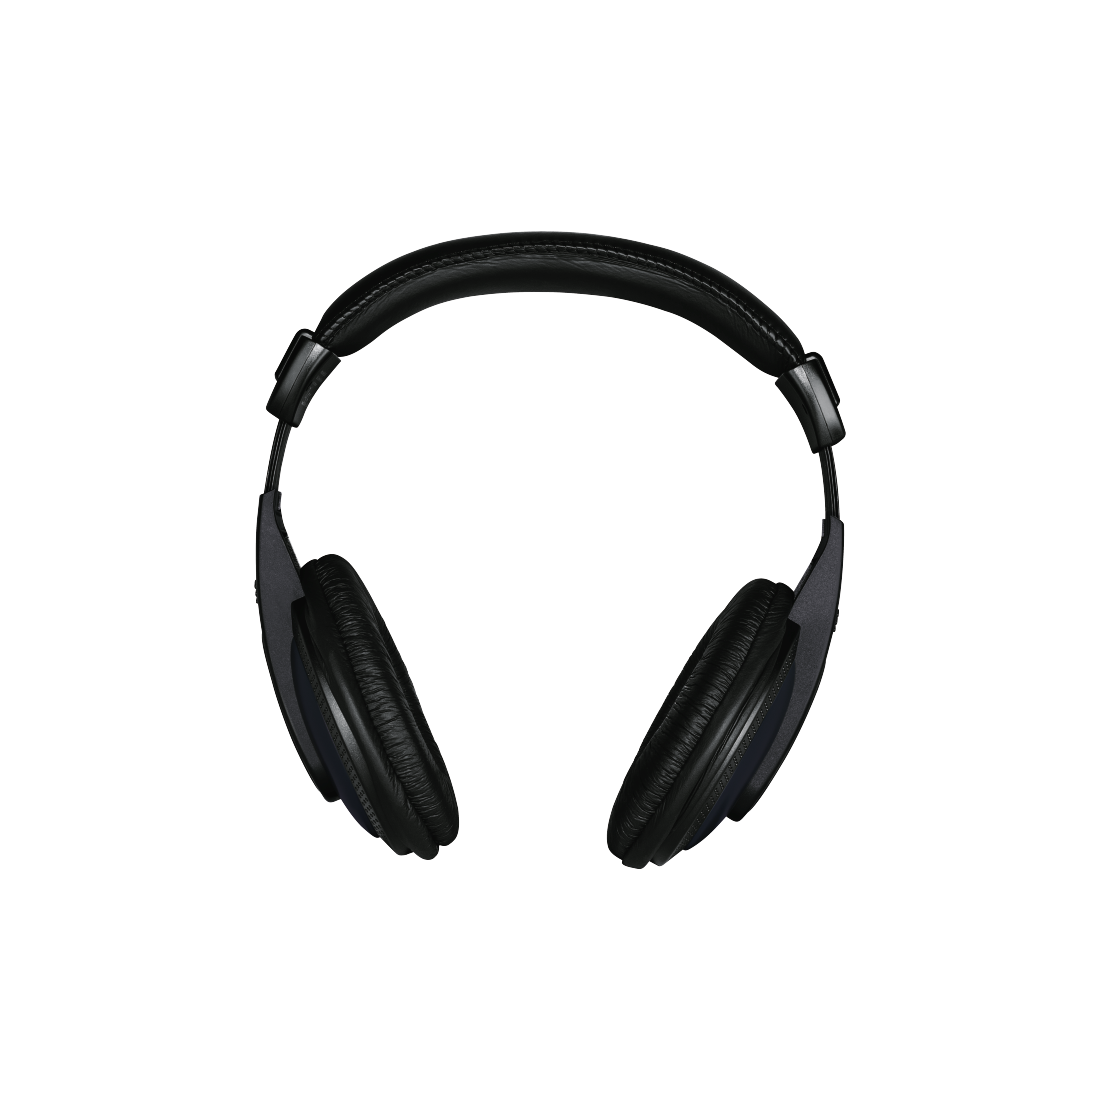 00135698 Hama First Music Over Ear Stereo Headphones Black Headphone Abx2 High Res Image 2